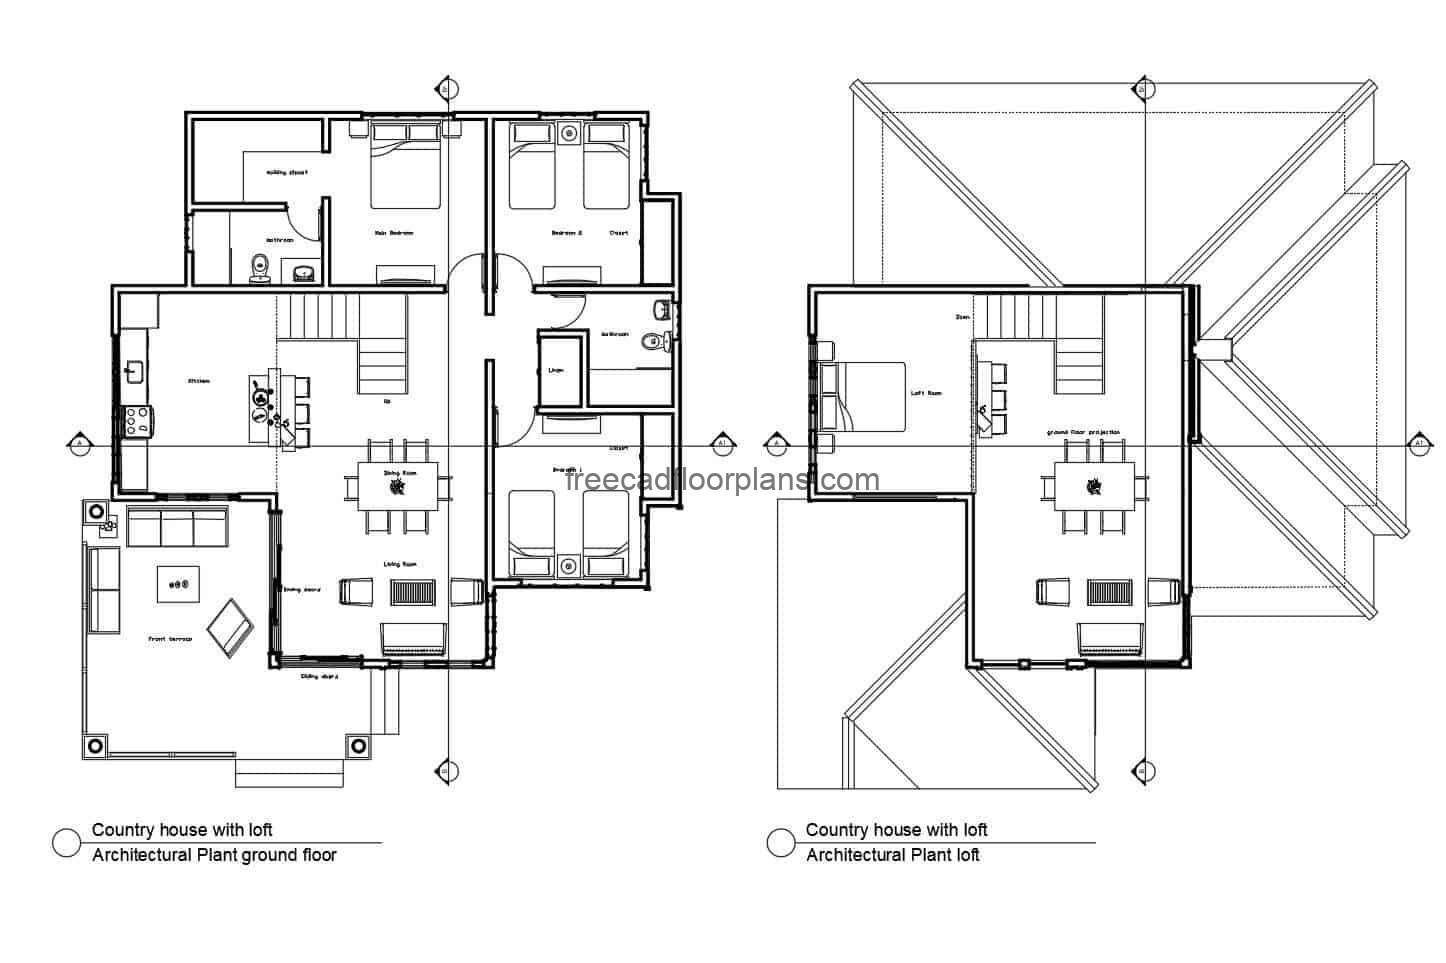 Architectural plans in autocad format for free download of a two-level country house with three bedrooms and a loft.